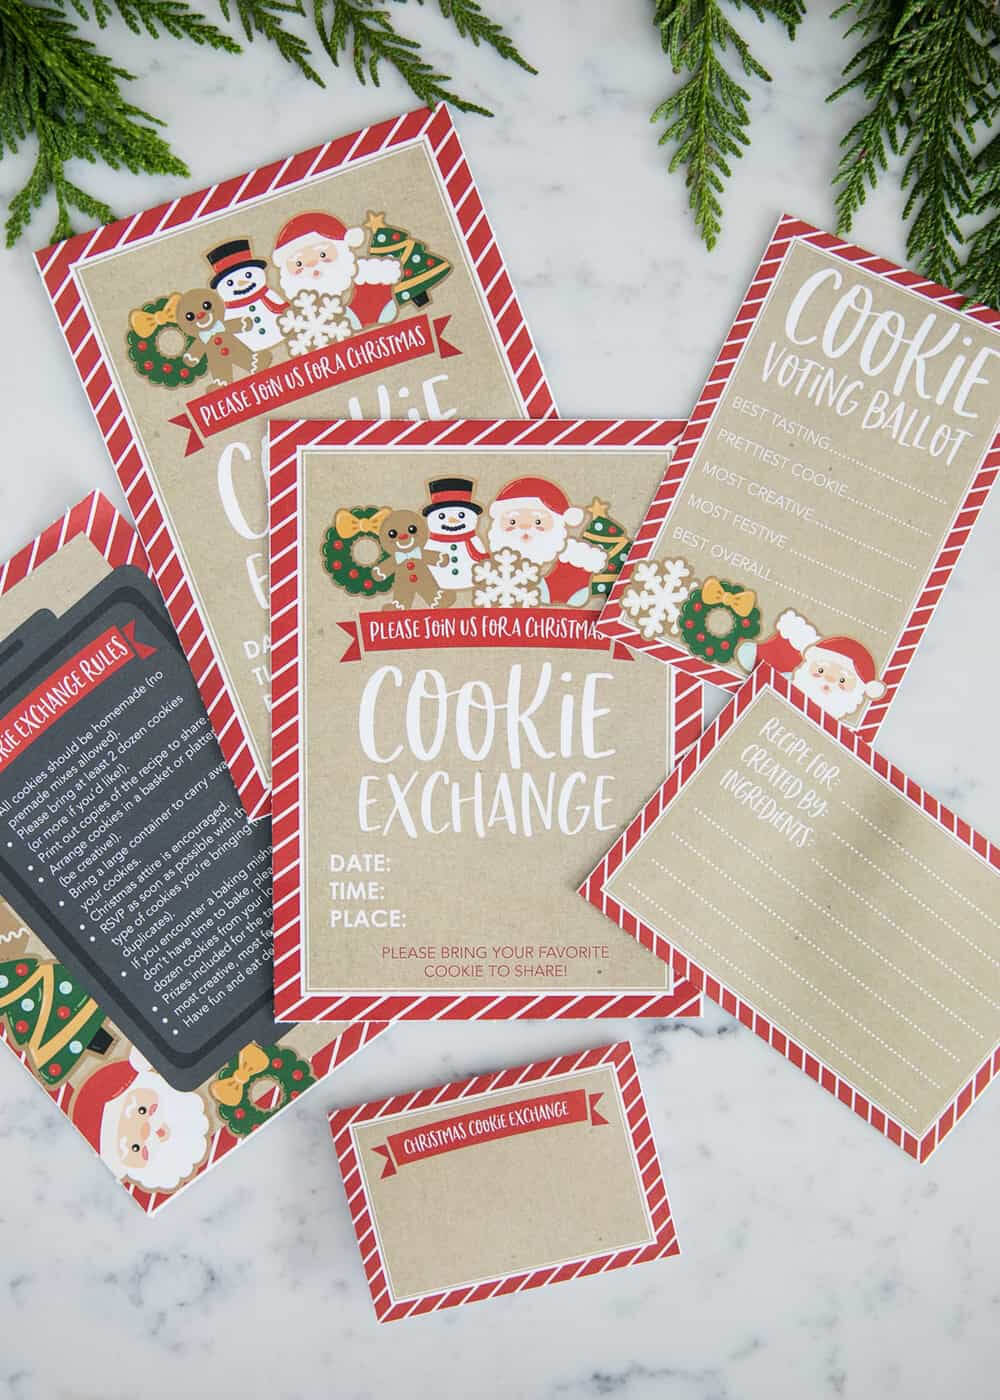 How To Host A Cookie Exchange (W/ Free Printables!) - I Pertaining To Cookie Exchange Recipe Card Template